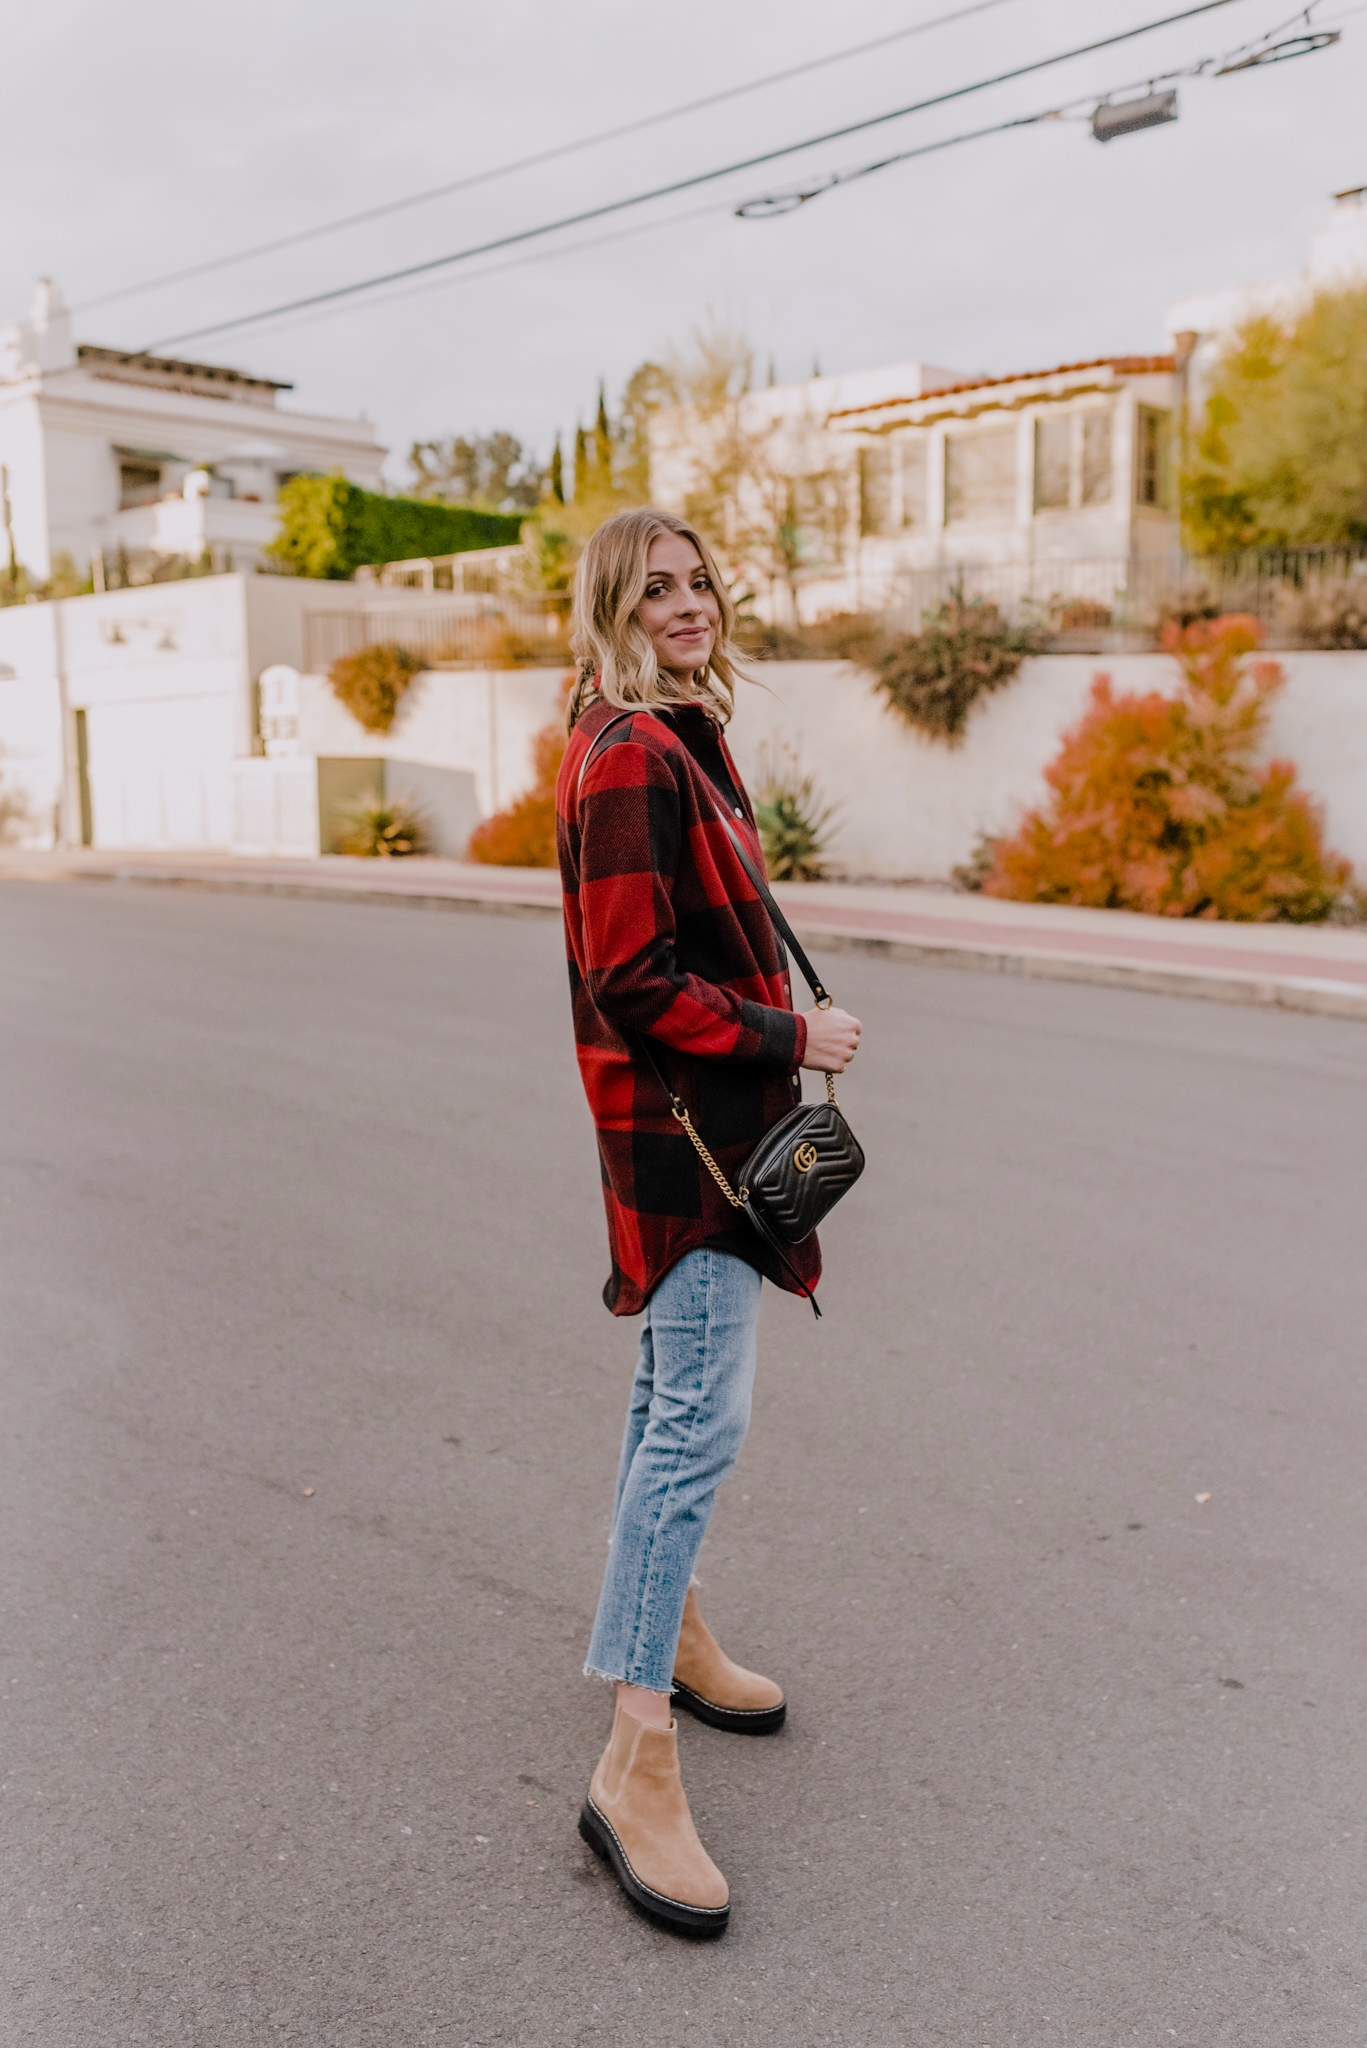 10 coats and jackets    Winter Jackets by popular San Diego fashion blog, Navy Grace: image of Camilla Thurman wearing a Red Plaid Coat, BB Dakota bb, Madewell Denim, Lug Sole Boots, and carrying a Gucci handbag.